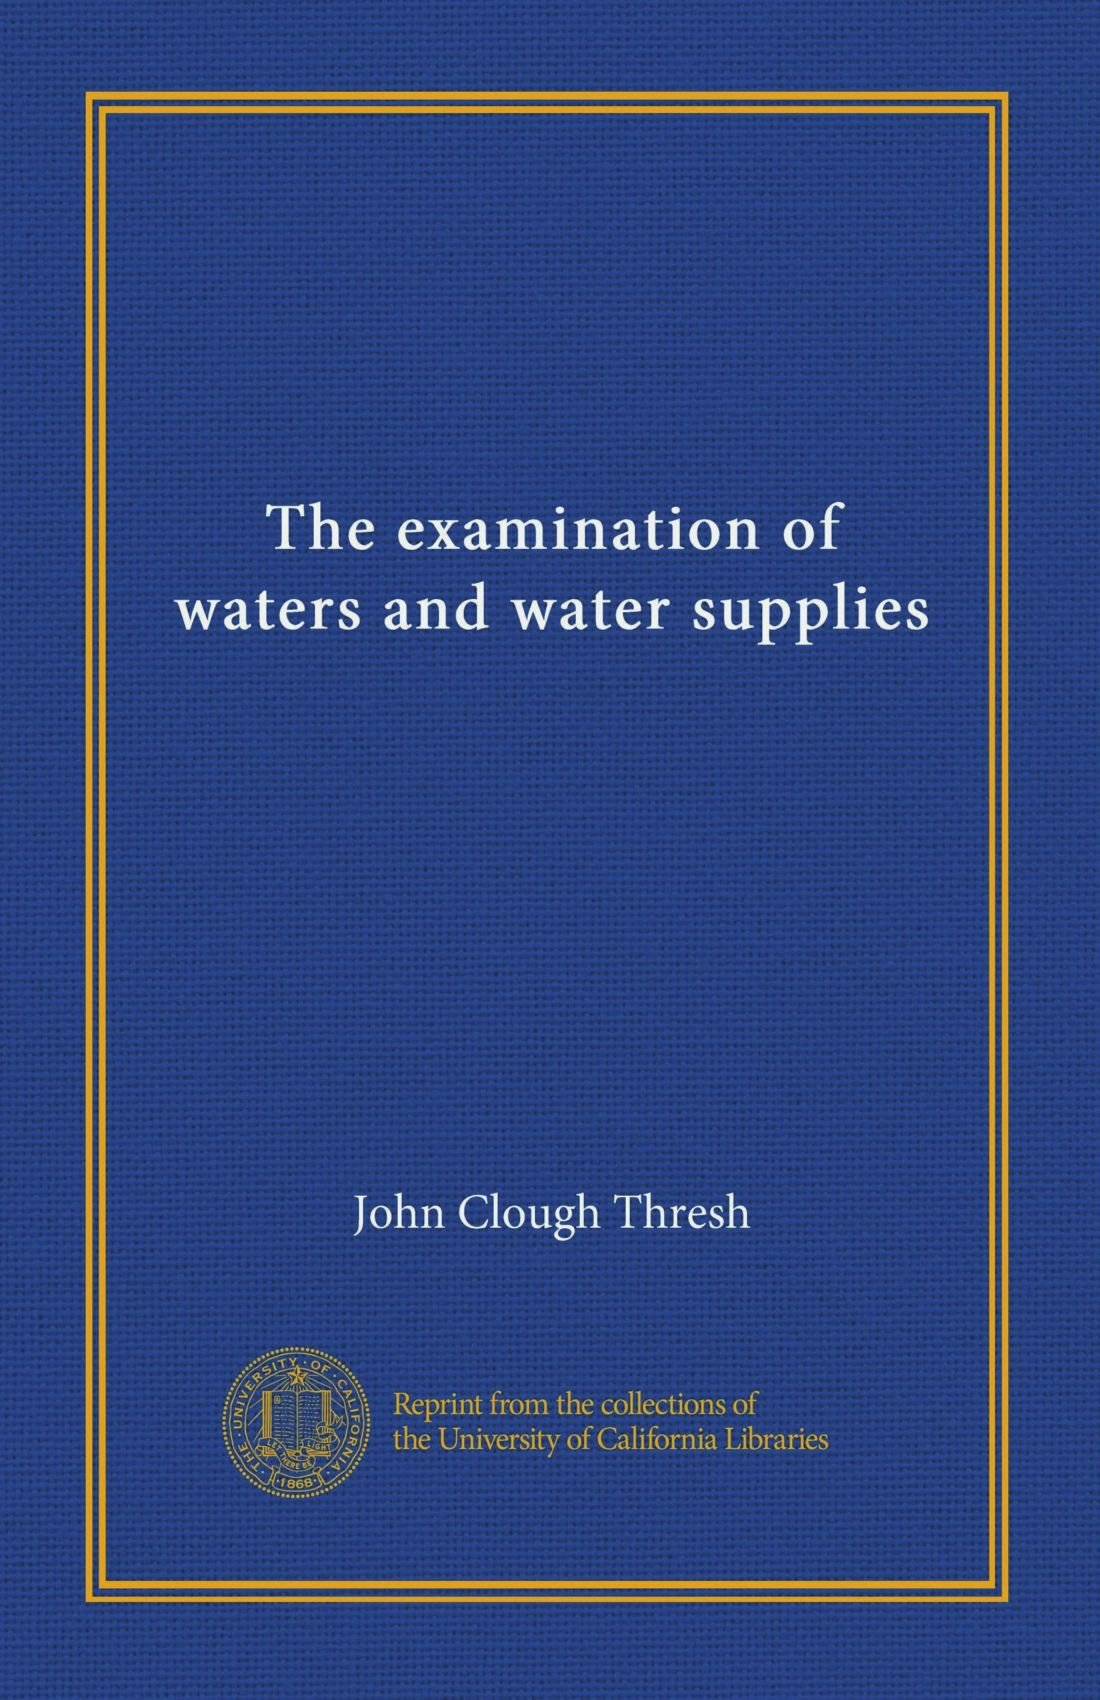 Download The examination of waters and water supplies ebook